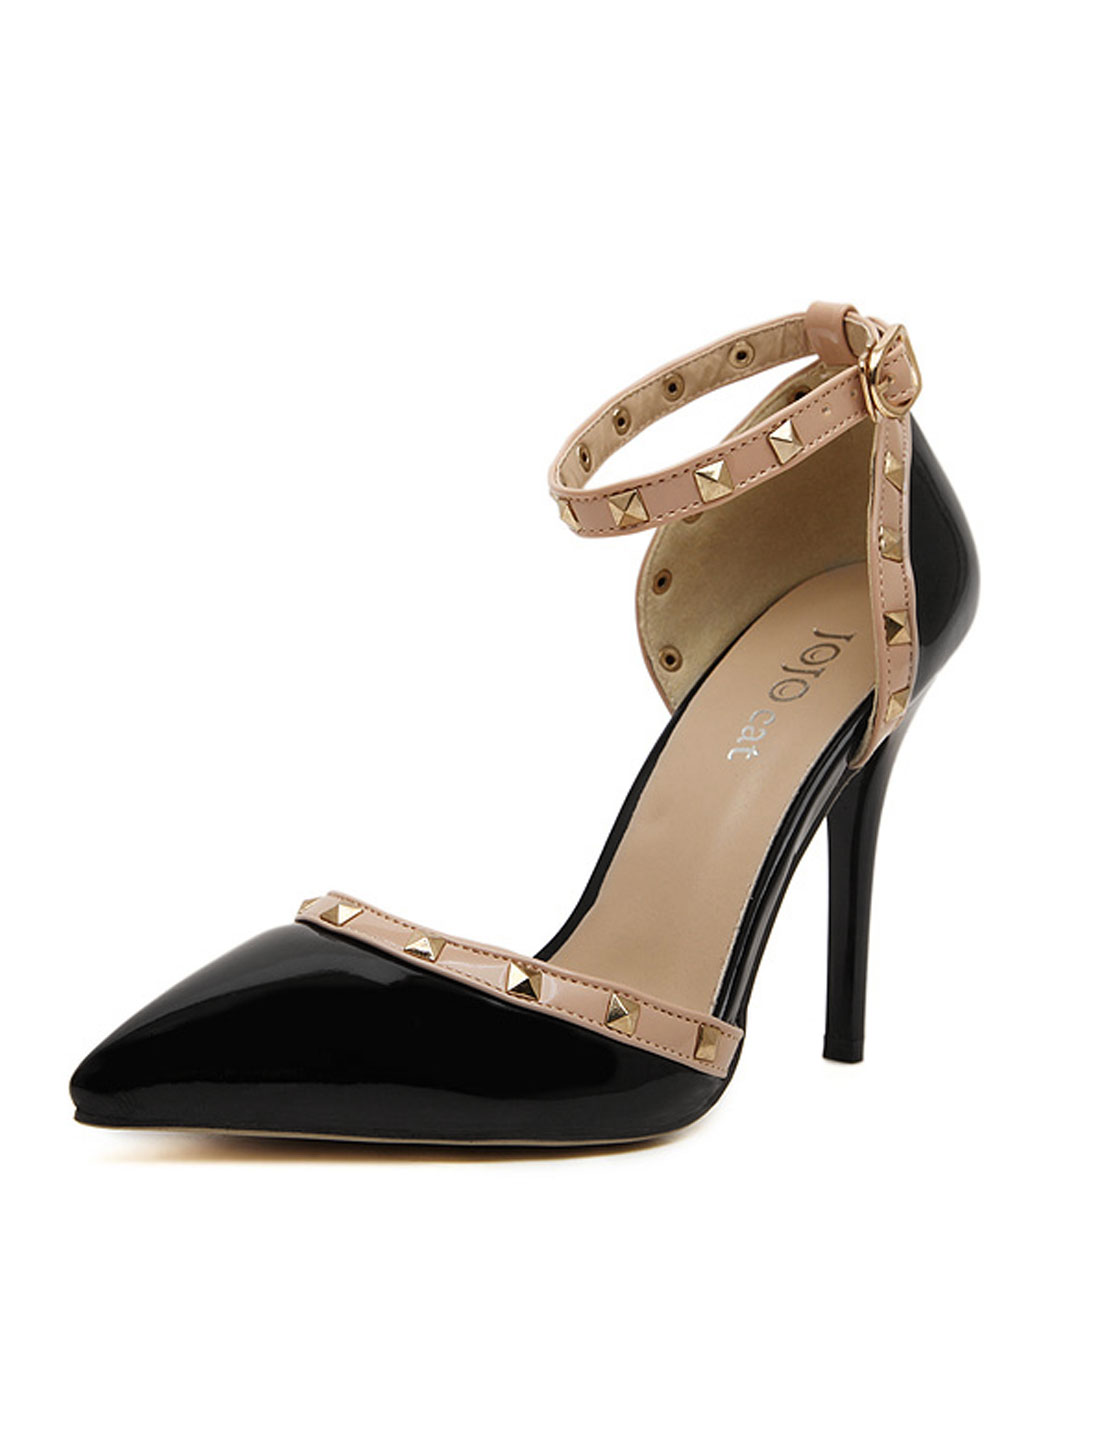 Woman Rivet Decor High Heels Pointed Ankle Strap Pumps Black US 7